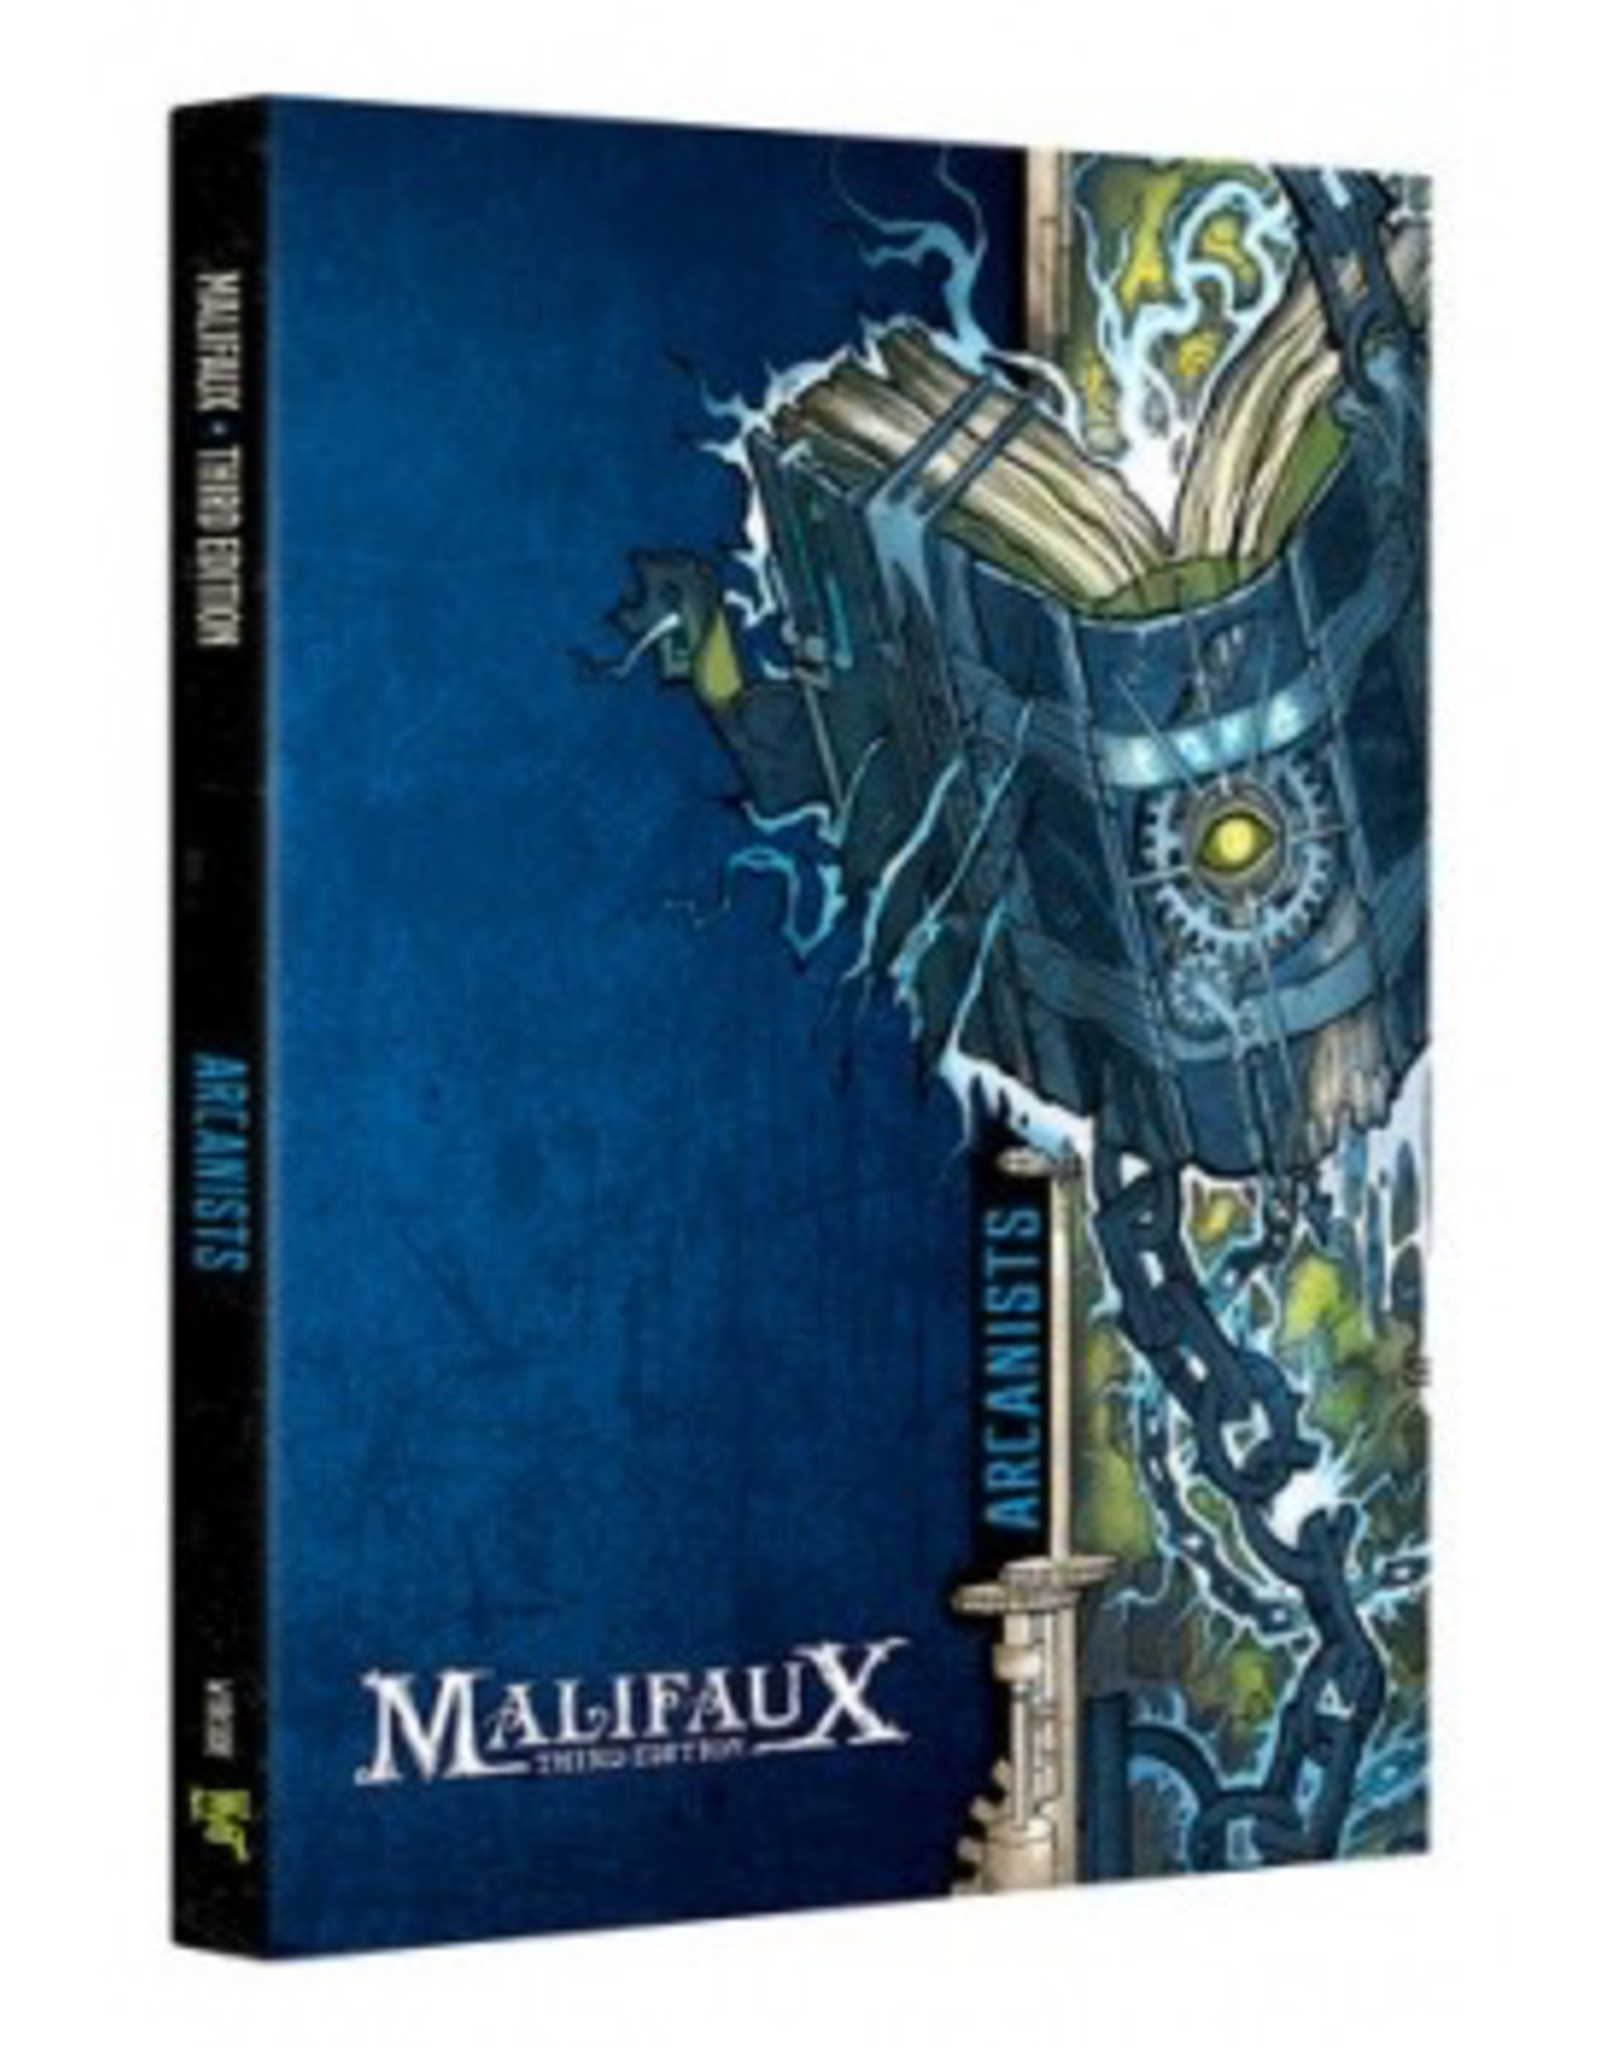 WYR - Malifaux Zubehör Malifaux 3rd Edition - Arcanist Faction Book - EN